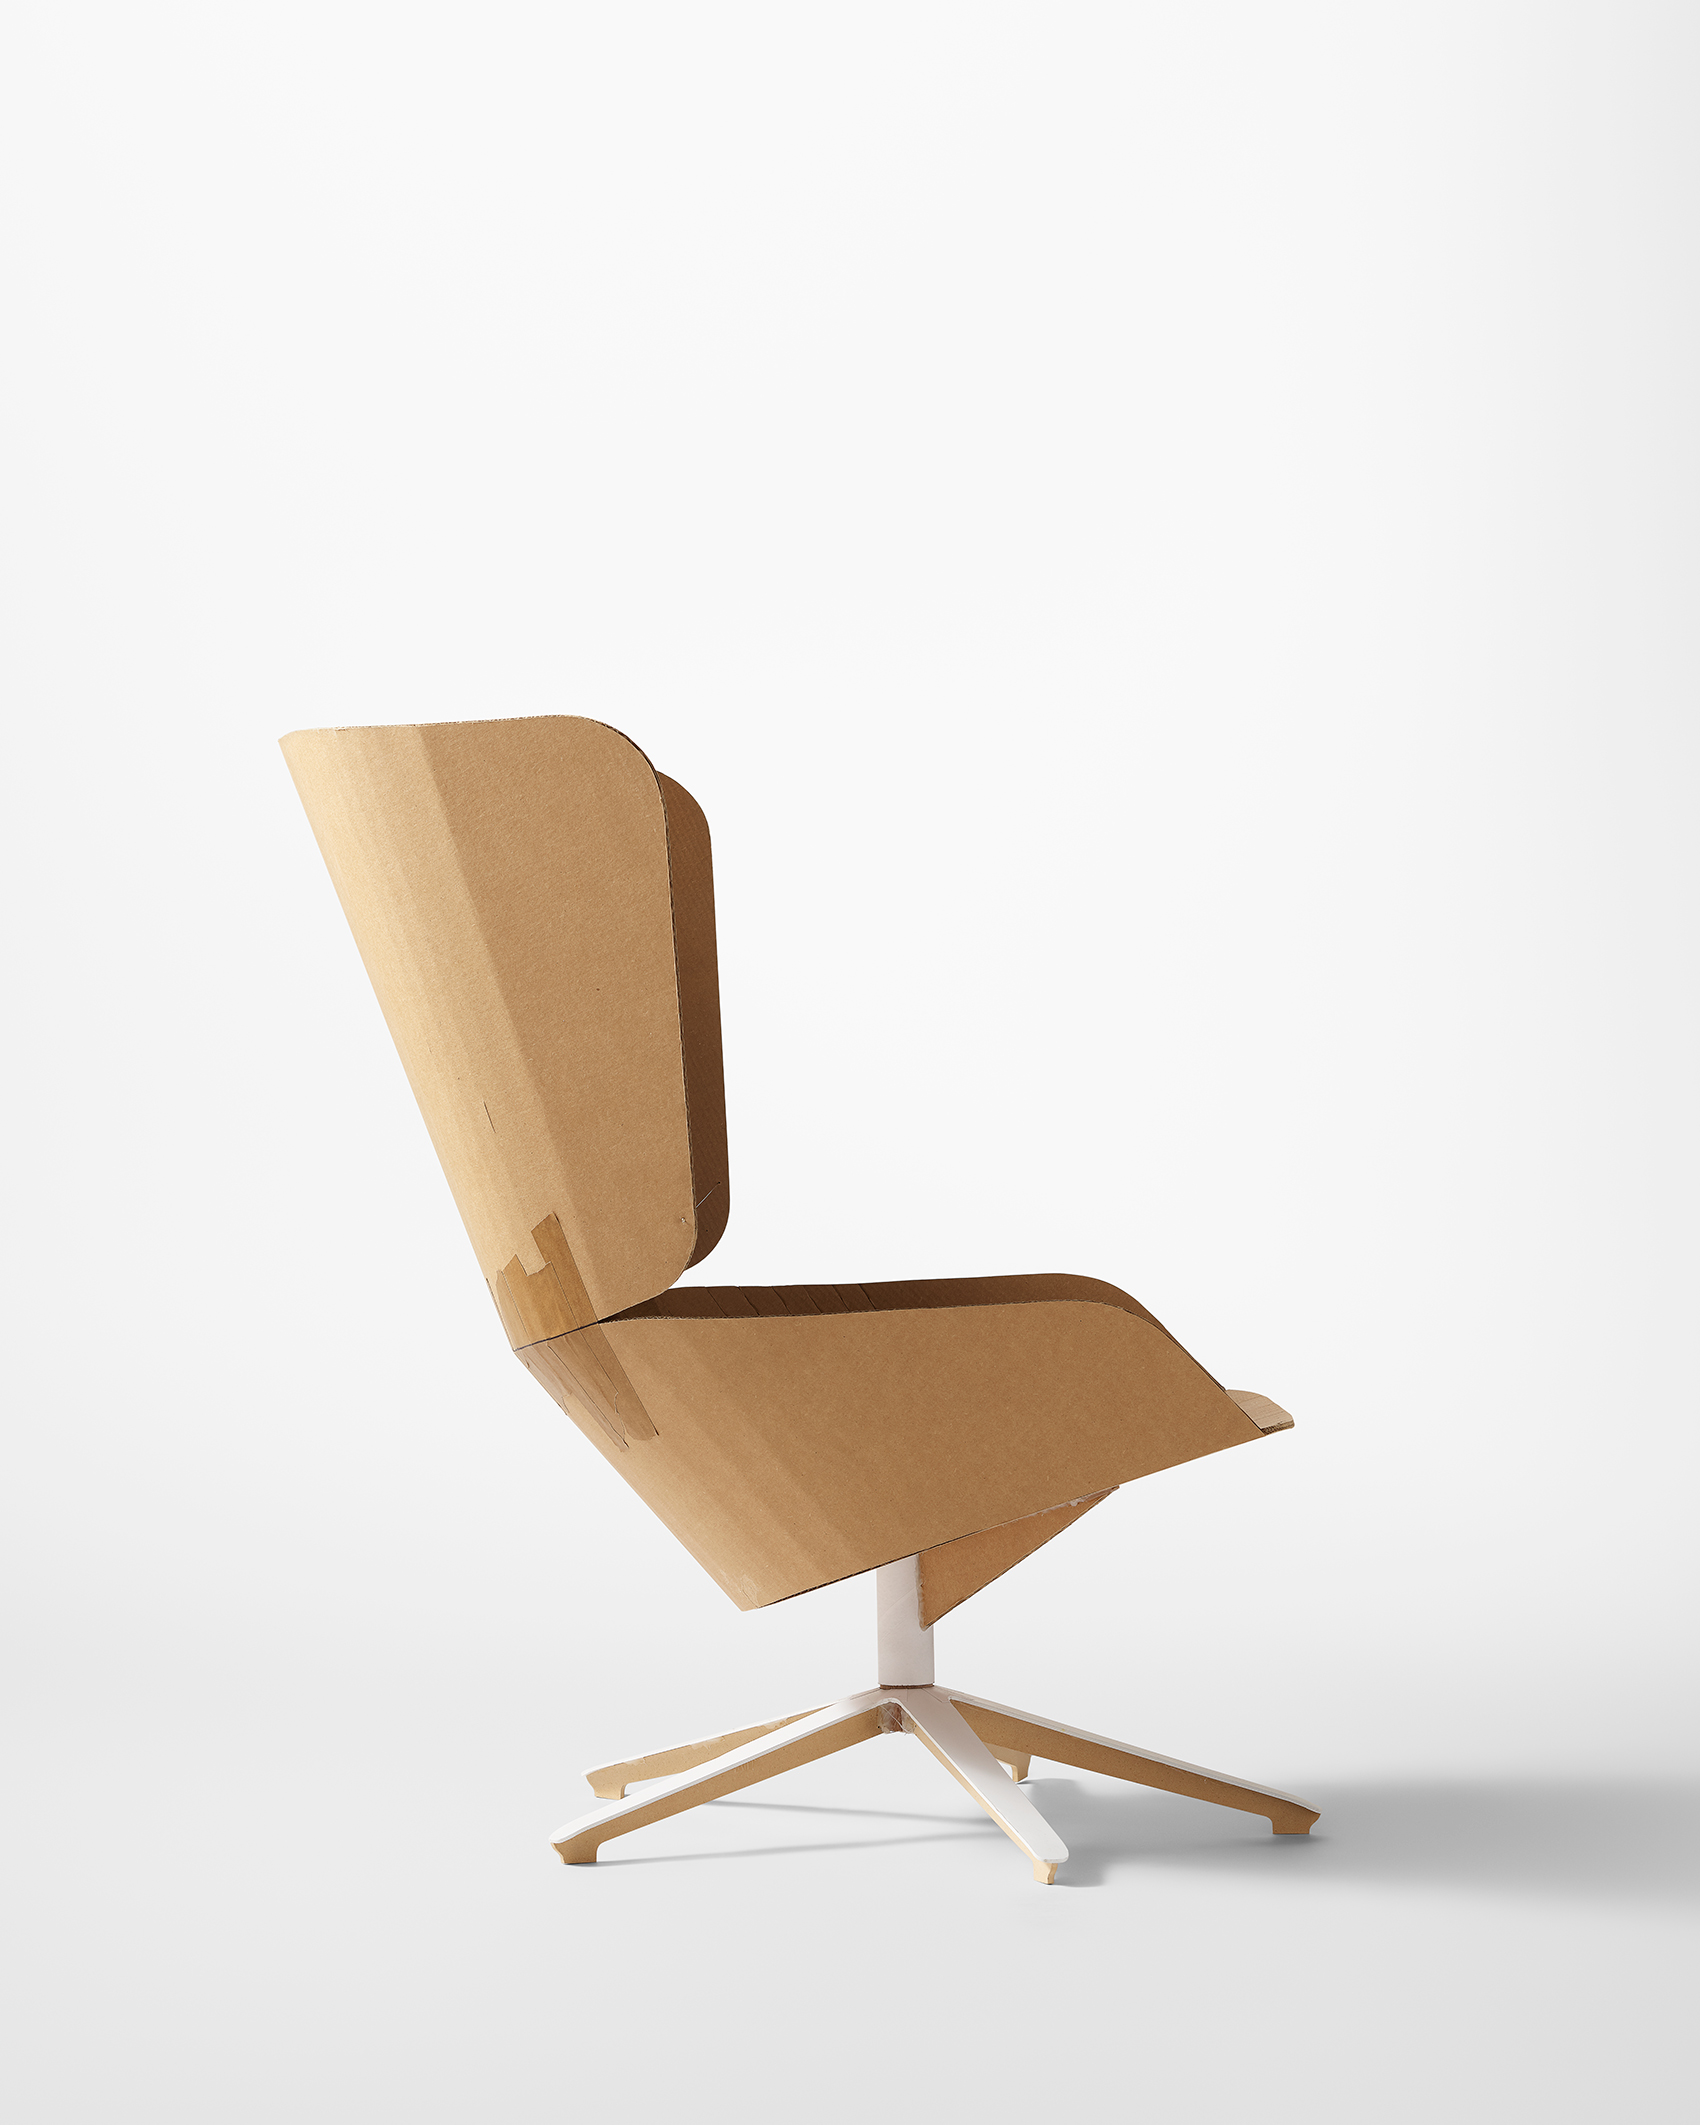 Swivel_Wingback_side-EDIT